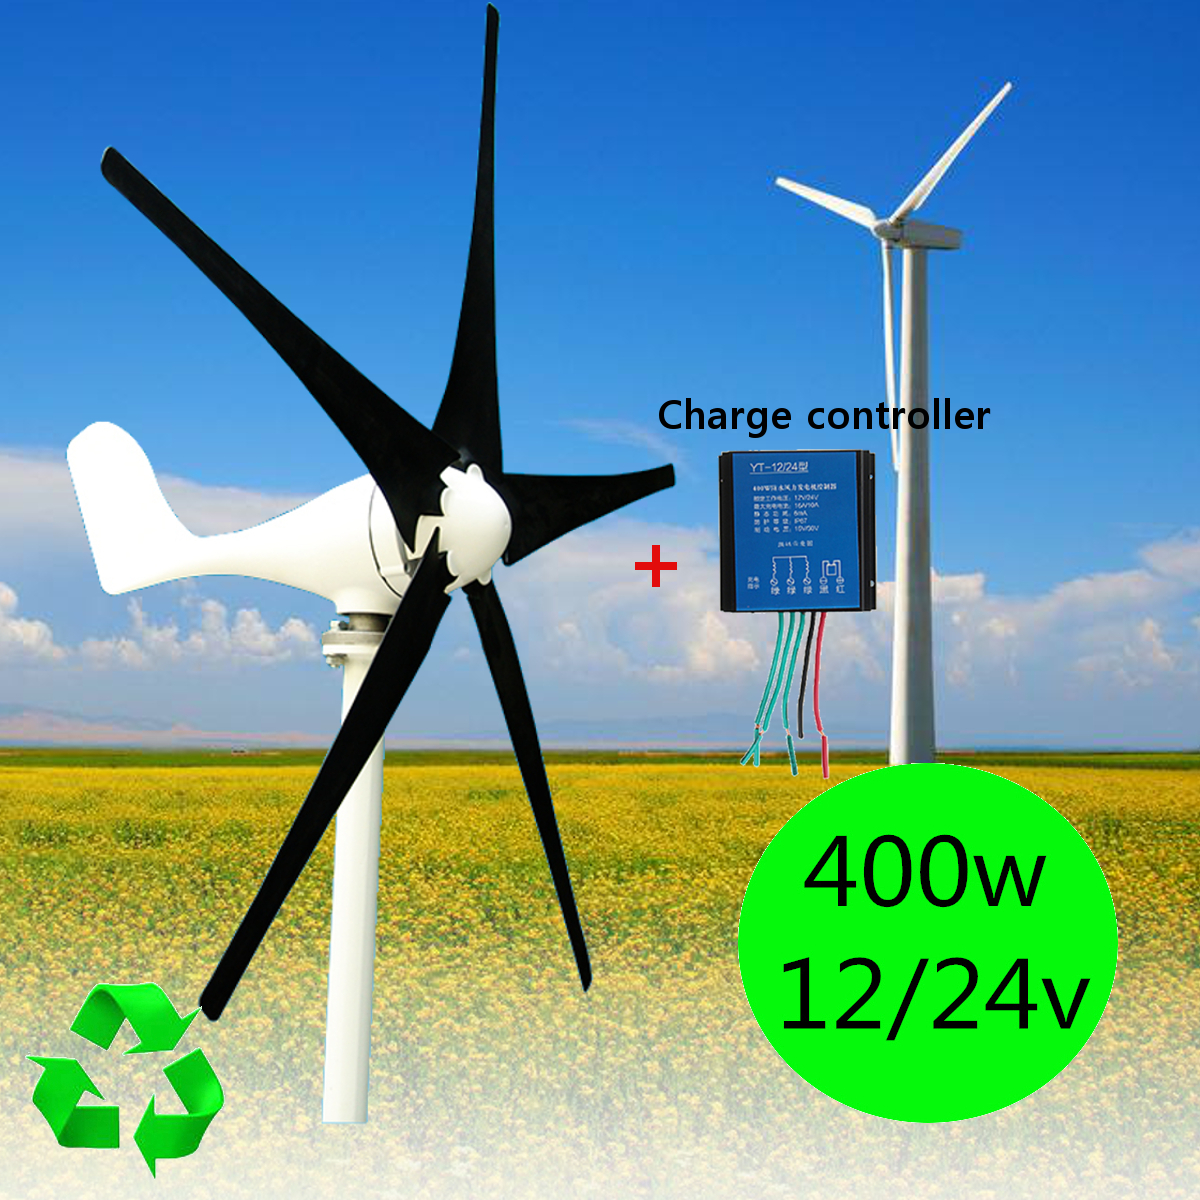 400W Power Wind Turbine Generator DC 12/24V 5 Blade with Windmill Charge Controller powers (Max 500W)